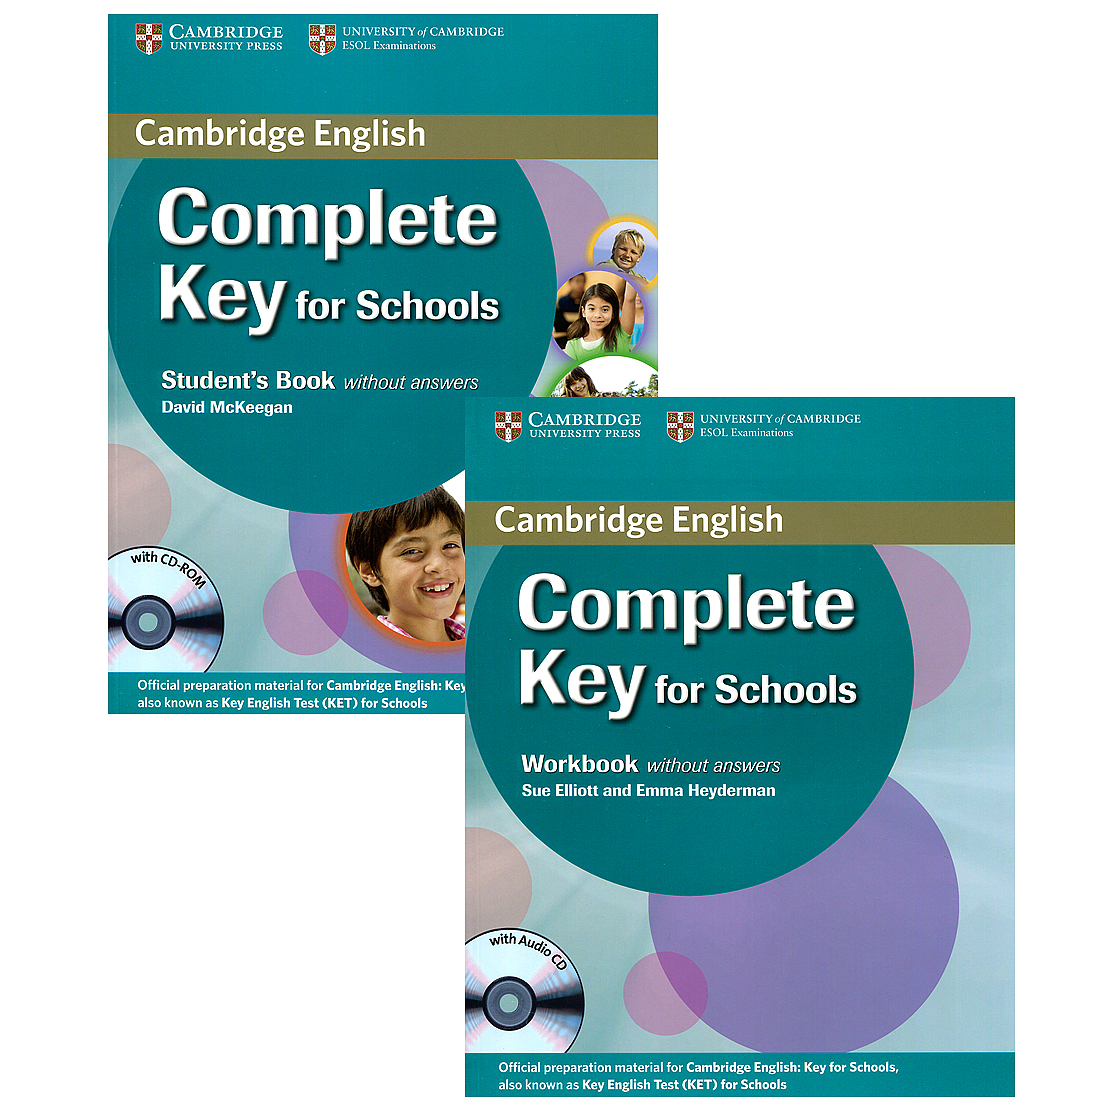 Complete Key for Schools (комплект из 2 книг + 2 CD) патология кожи комплект из 2 книг